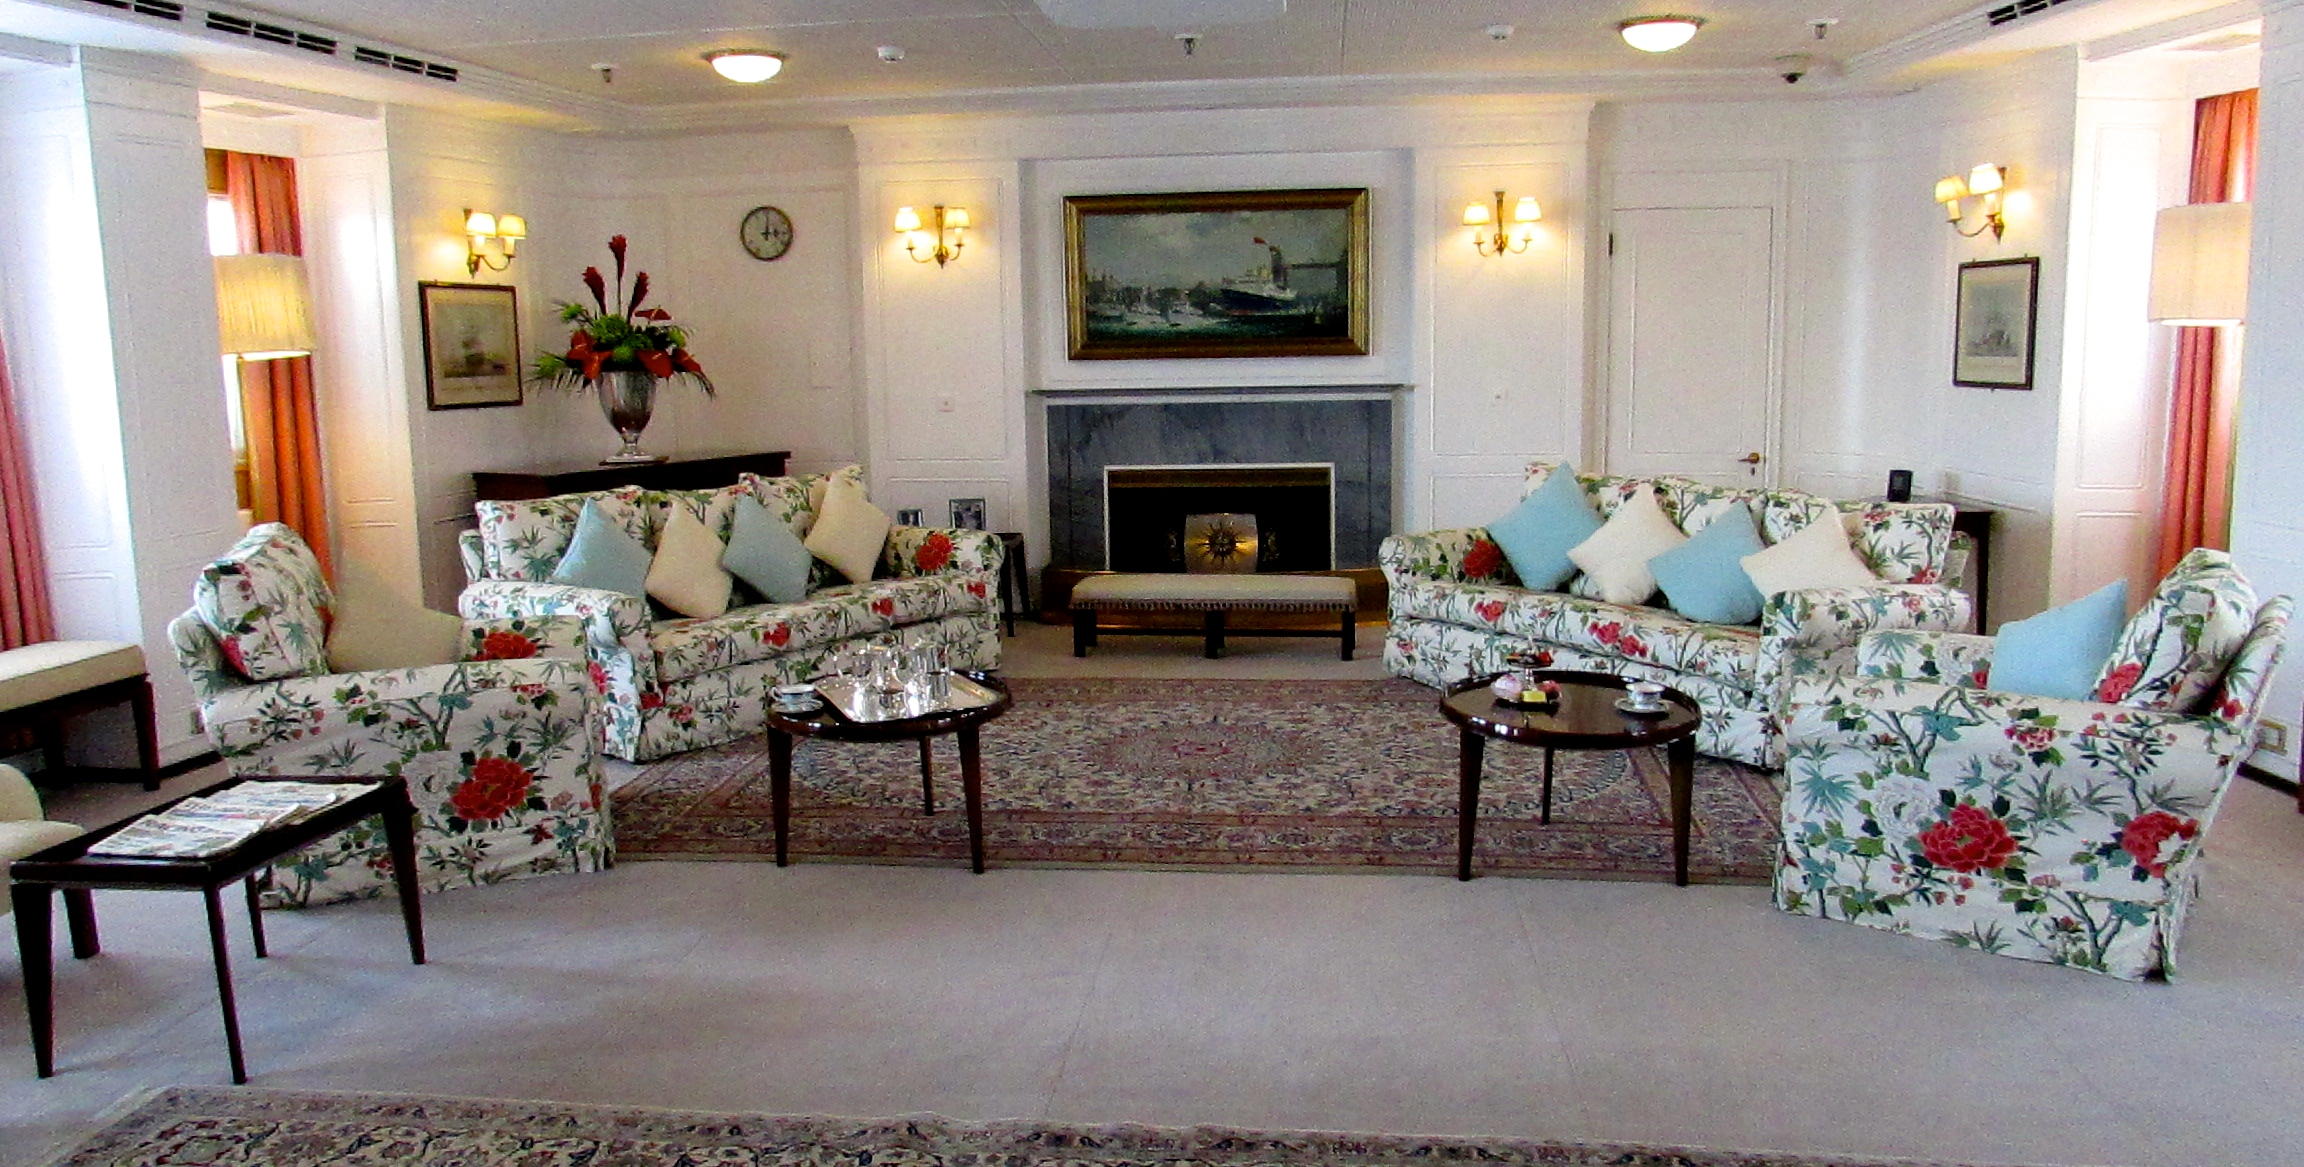 The drawing room is decorated like a charming country home and was the gathering place on the yacht.